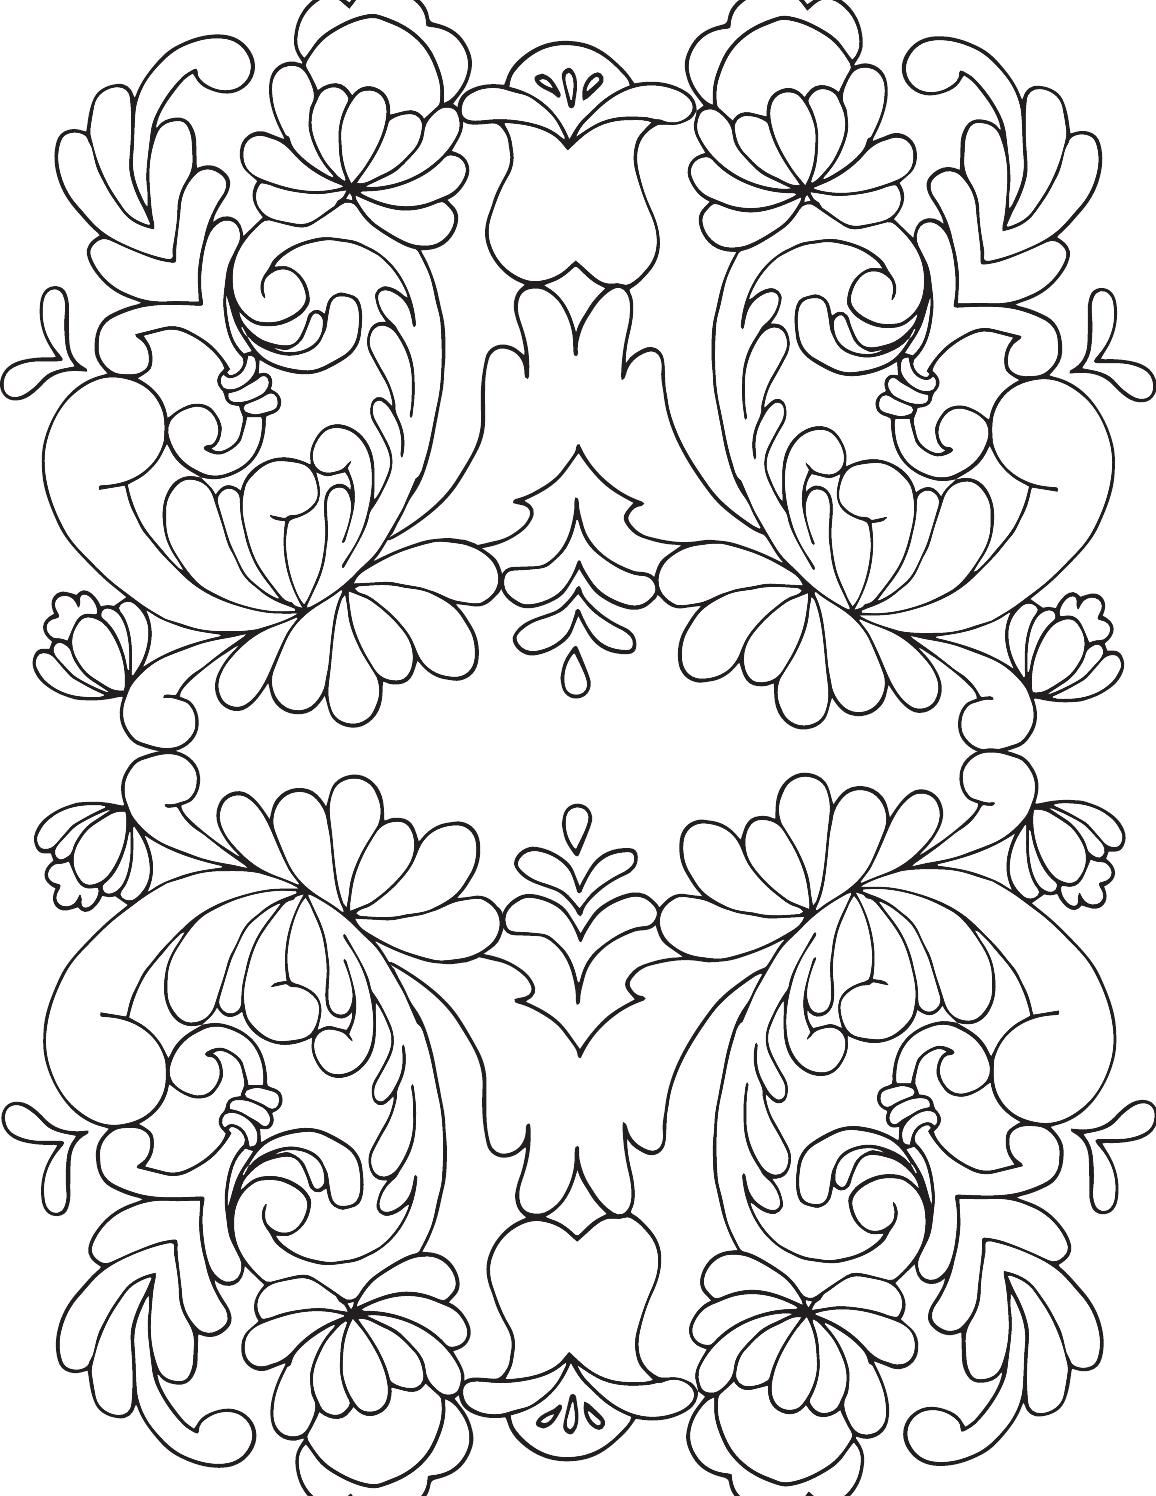 Rosemaling Coloring Book1 Paper Art Color Adult Coloring Pages